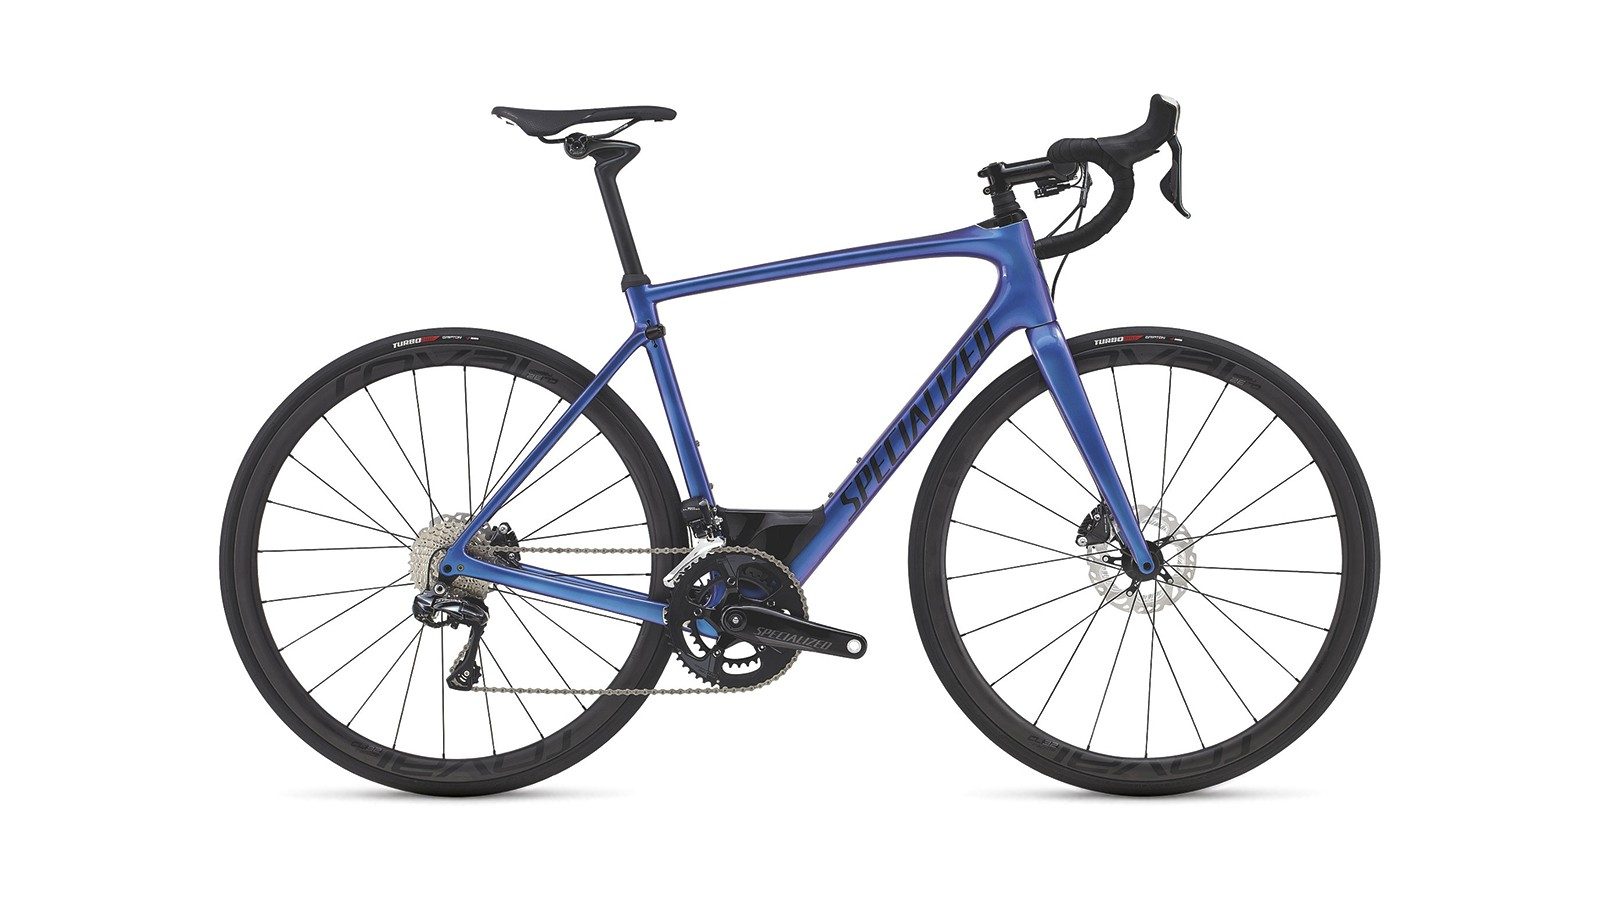 The Specialized Roubaix Pro Di2